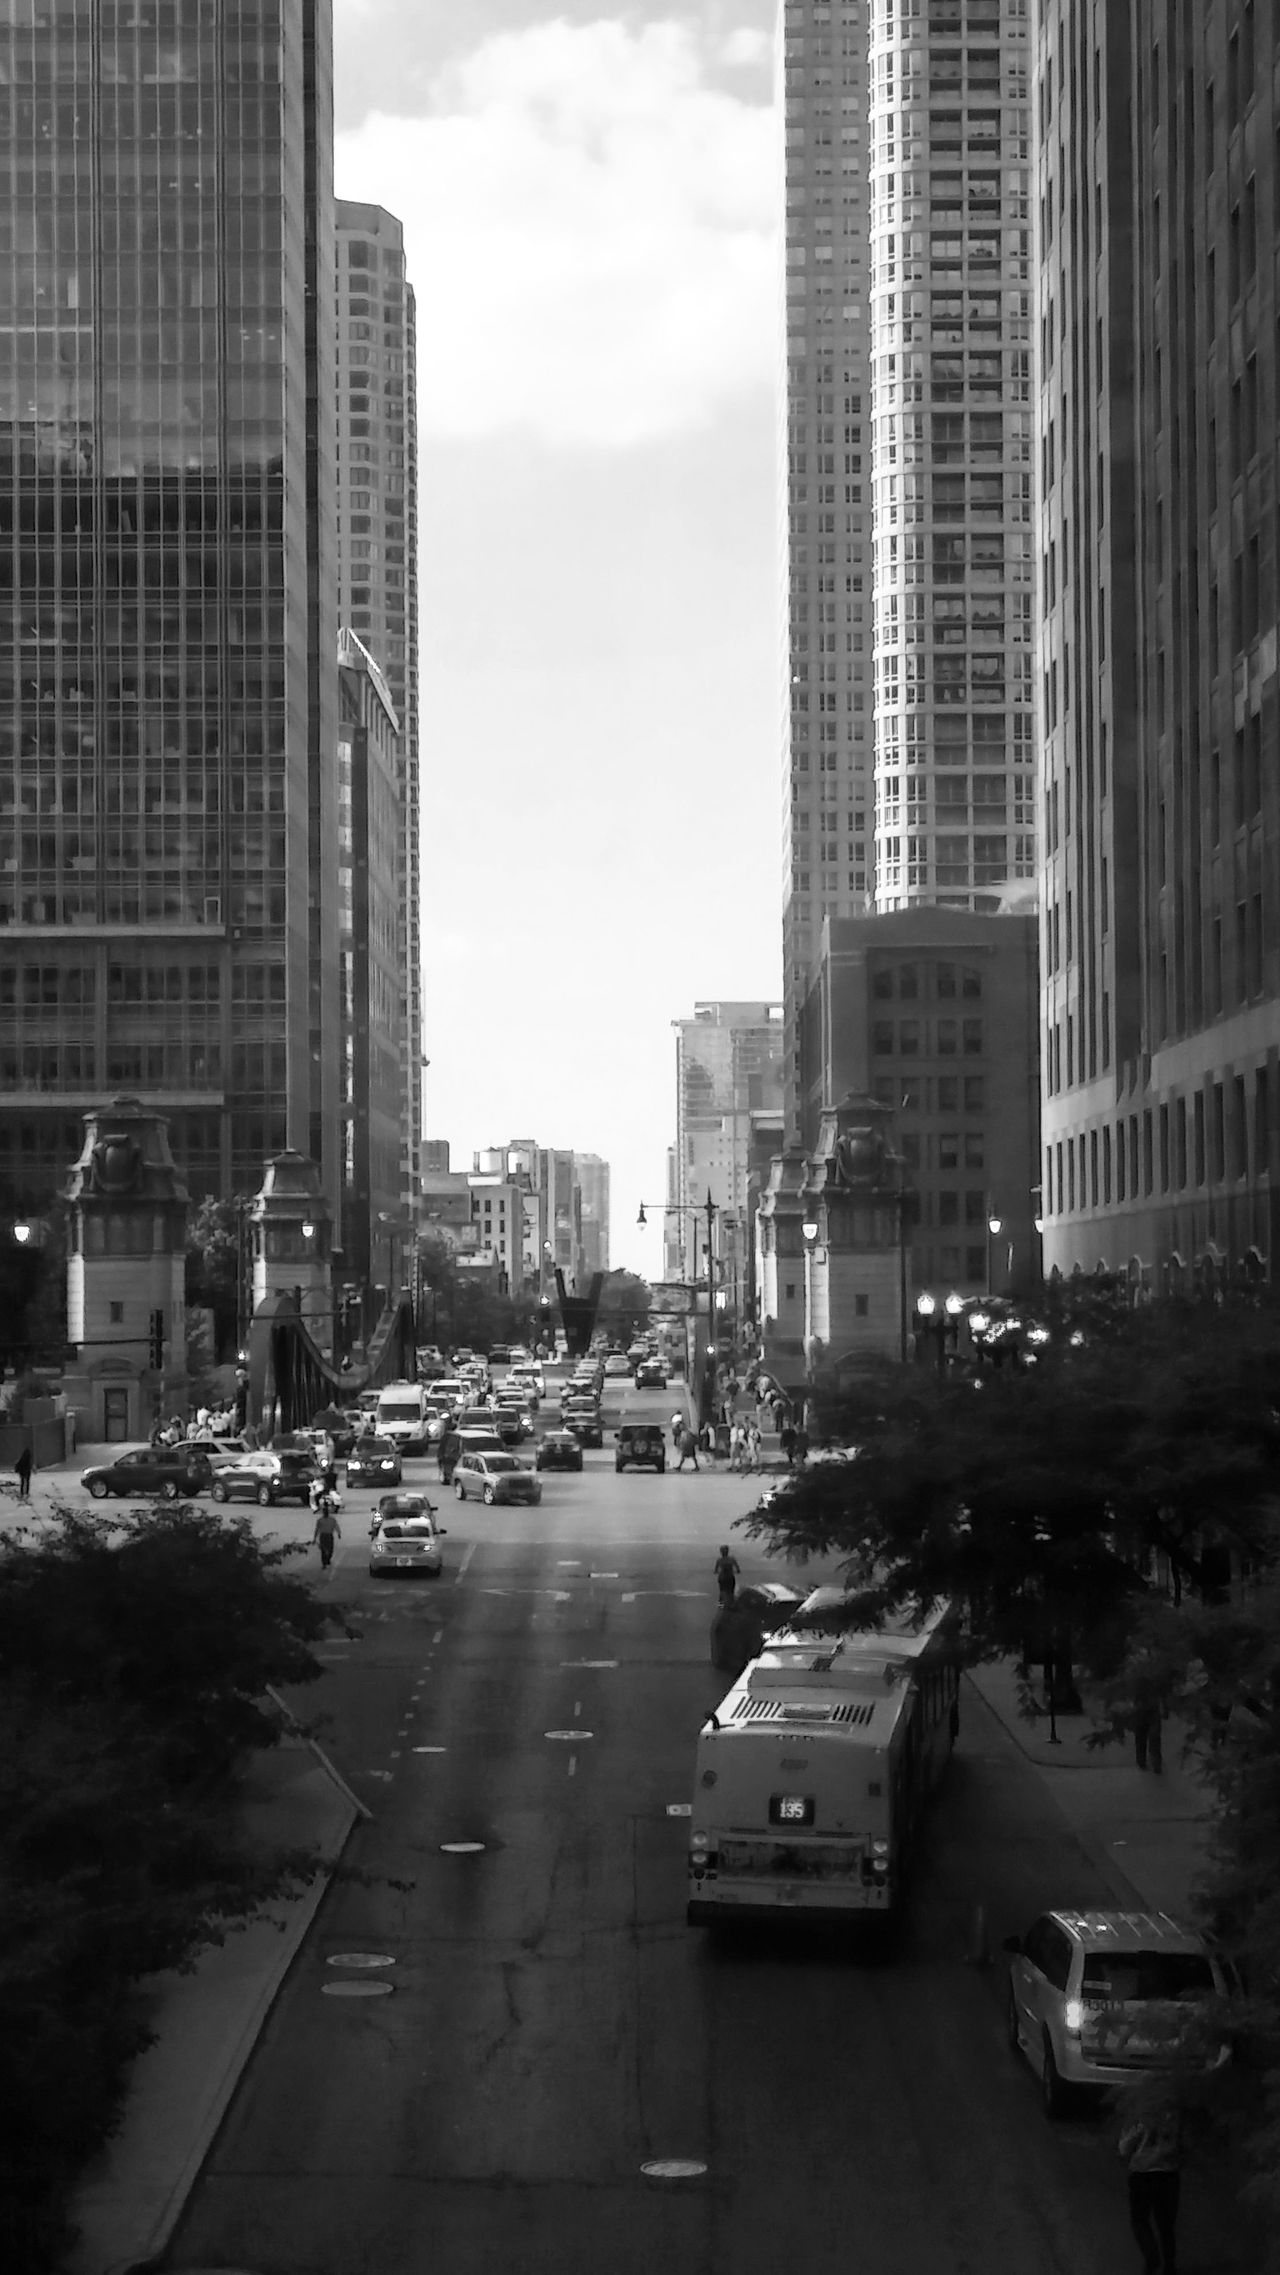 Architecture Blackandwhite Building Exterior Built Structure Car Chicago City City Cityscape Day Life Monochrome No People Outdoors Road Sky Skyscraper Transportation Travel View